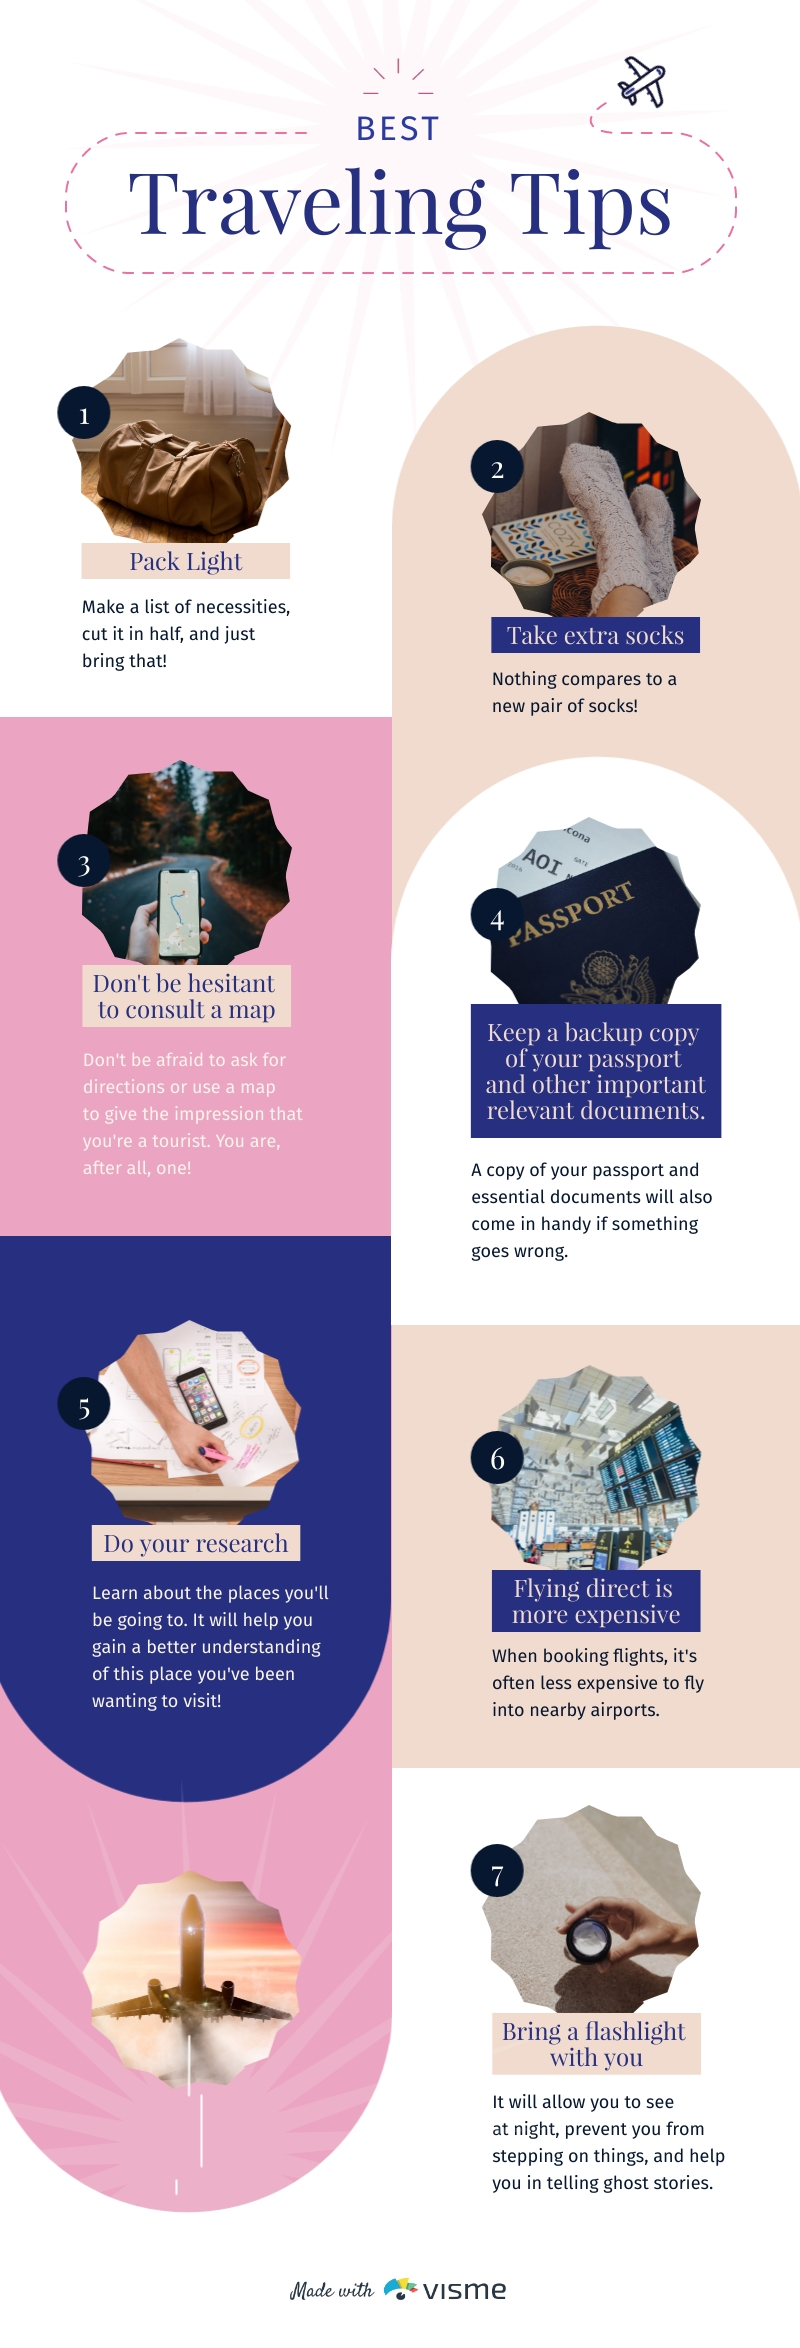 Best Traveling Tips - Infographic Template